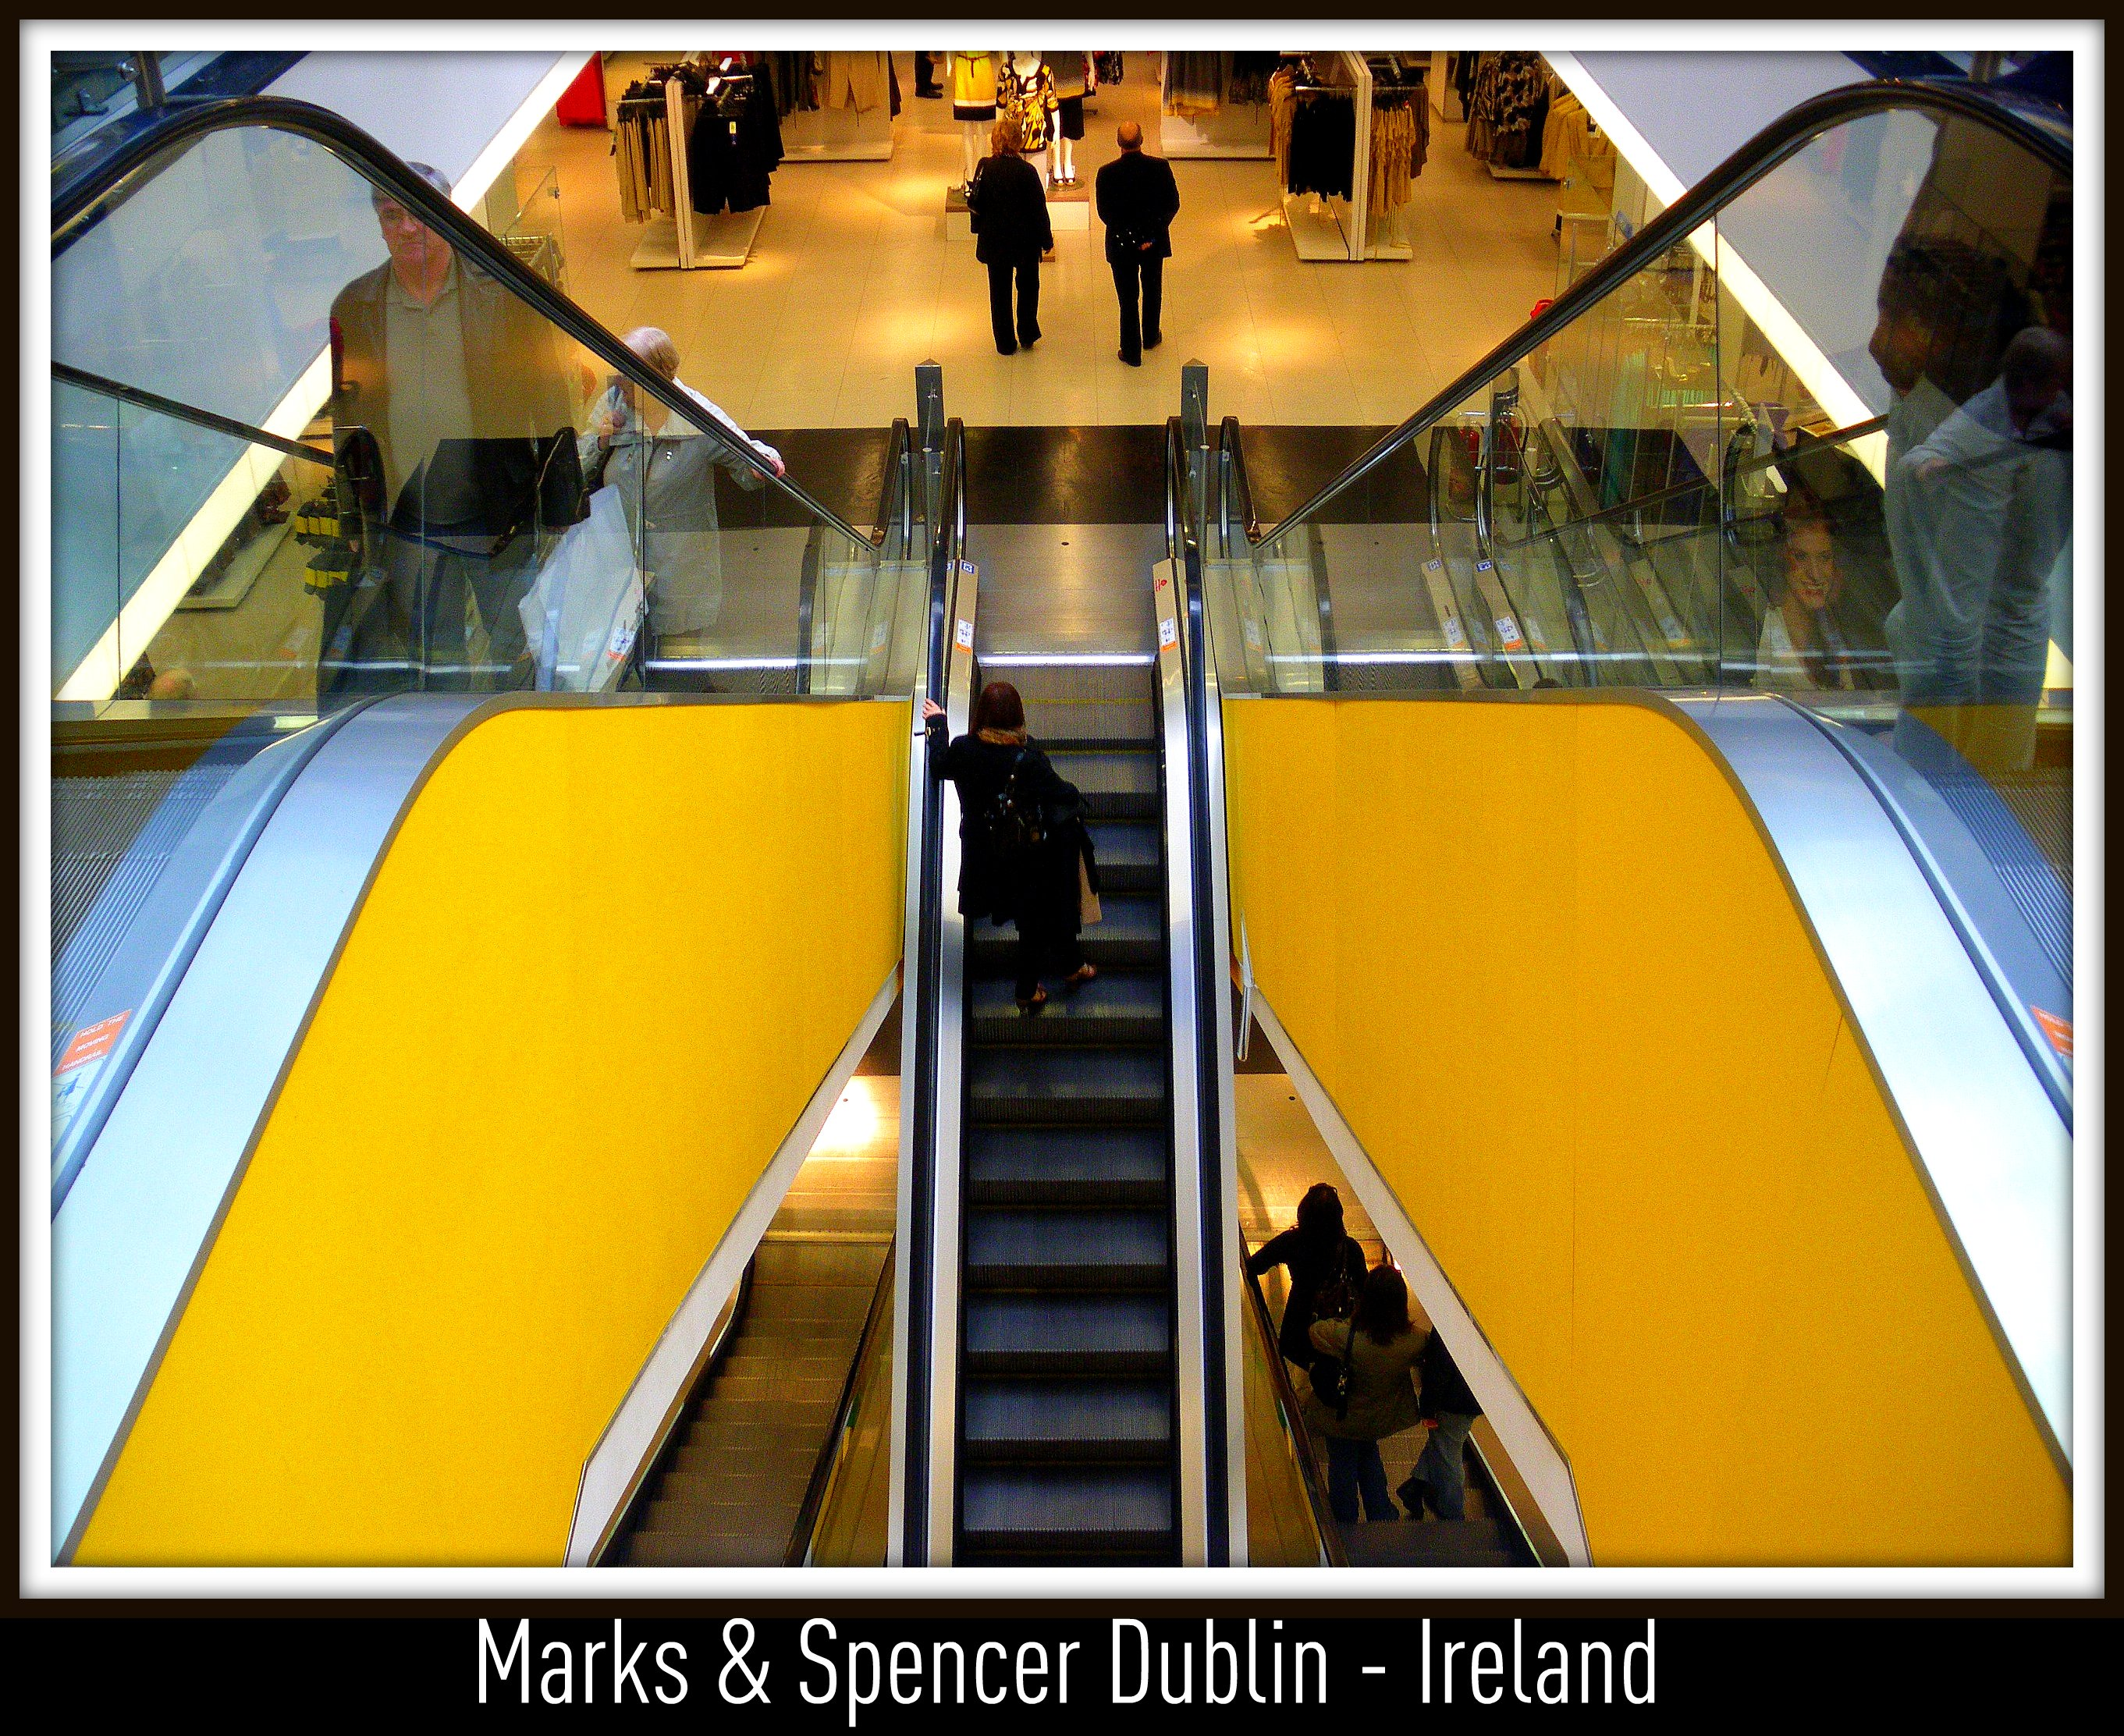 This Is Marks And Spencer At Grafton Street In Dublin Ireland Enjoy The Shopping The Great